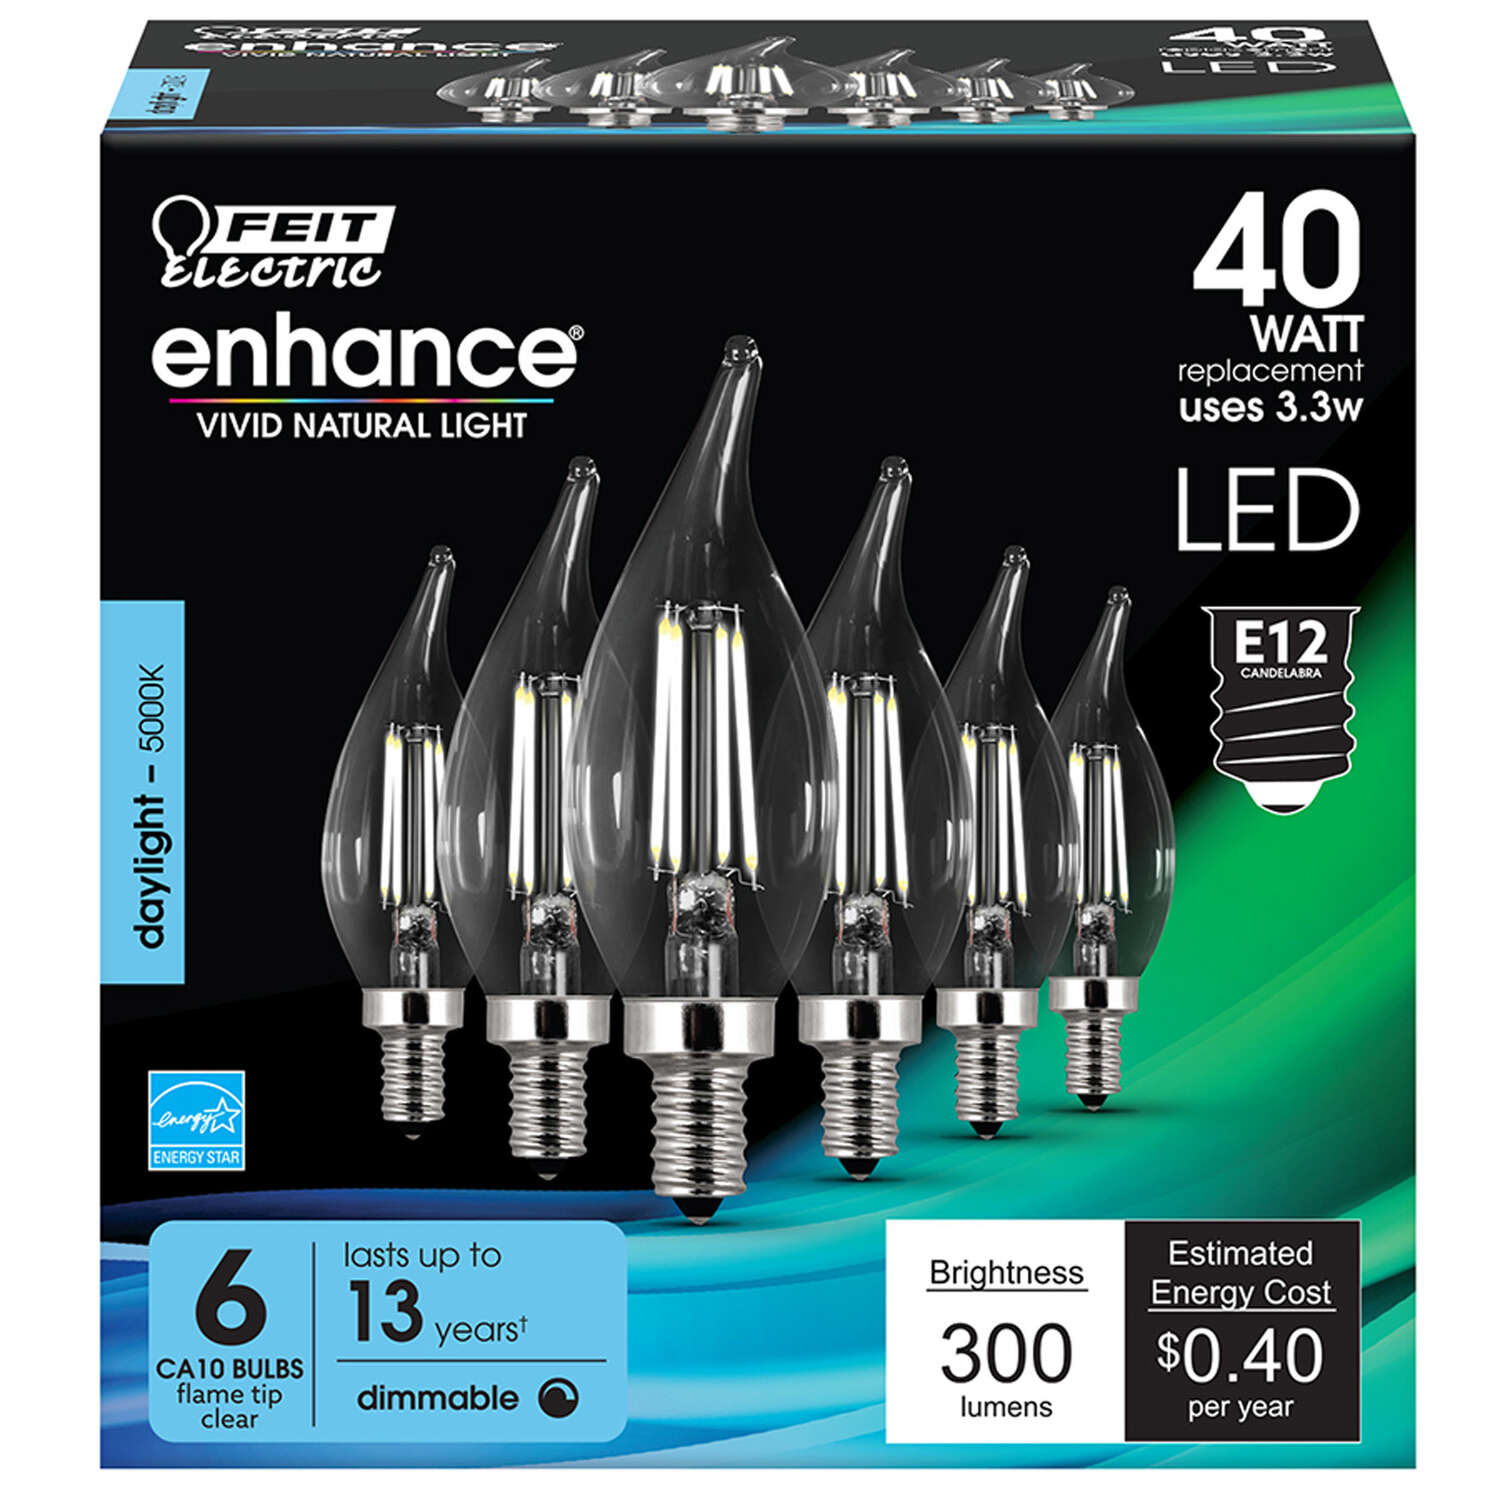 FEIT Electric  Enhance  CA10  E12 (Candelabra)  Filament LED Bulb  Daylight  40 Watt Equivalence 6 p